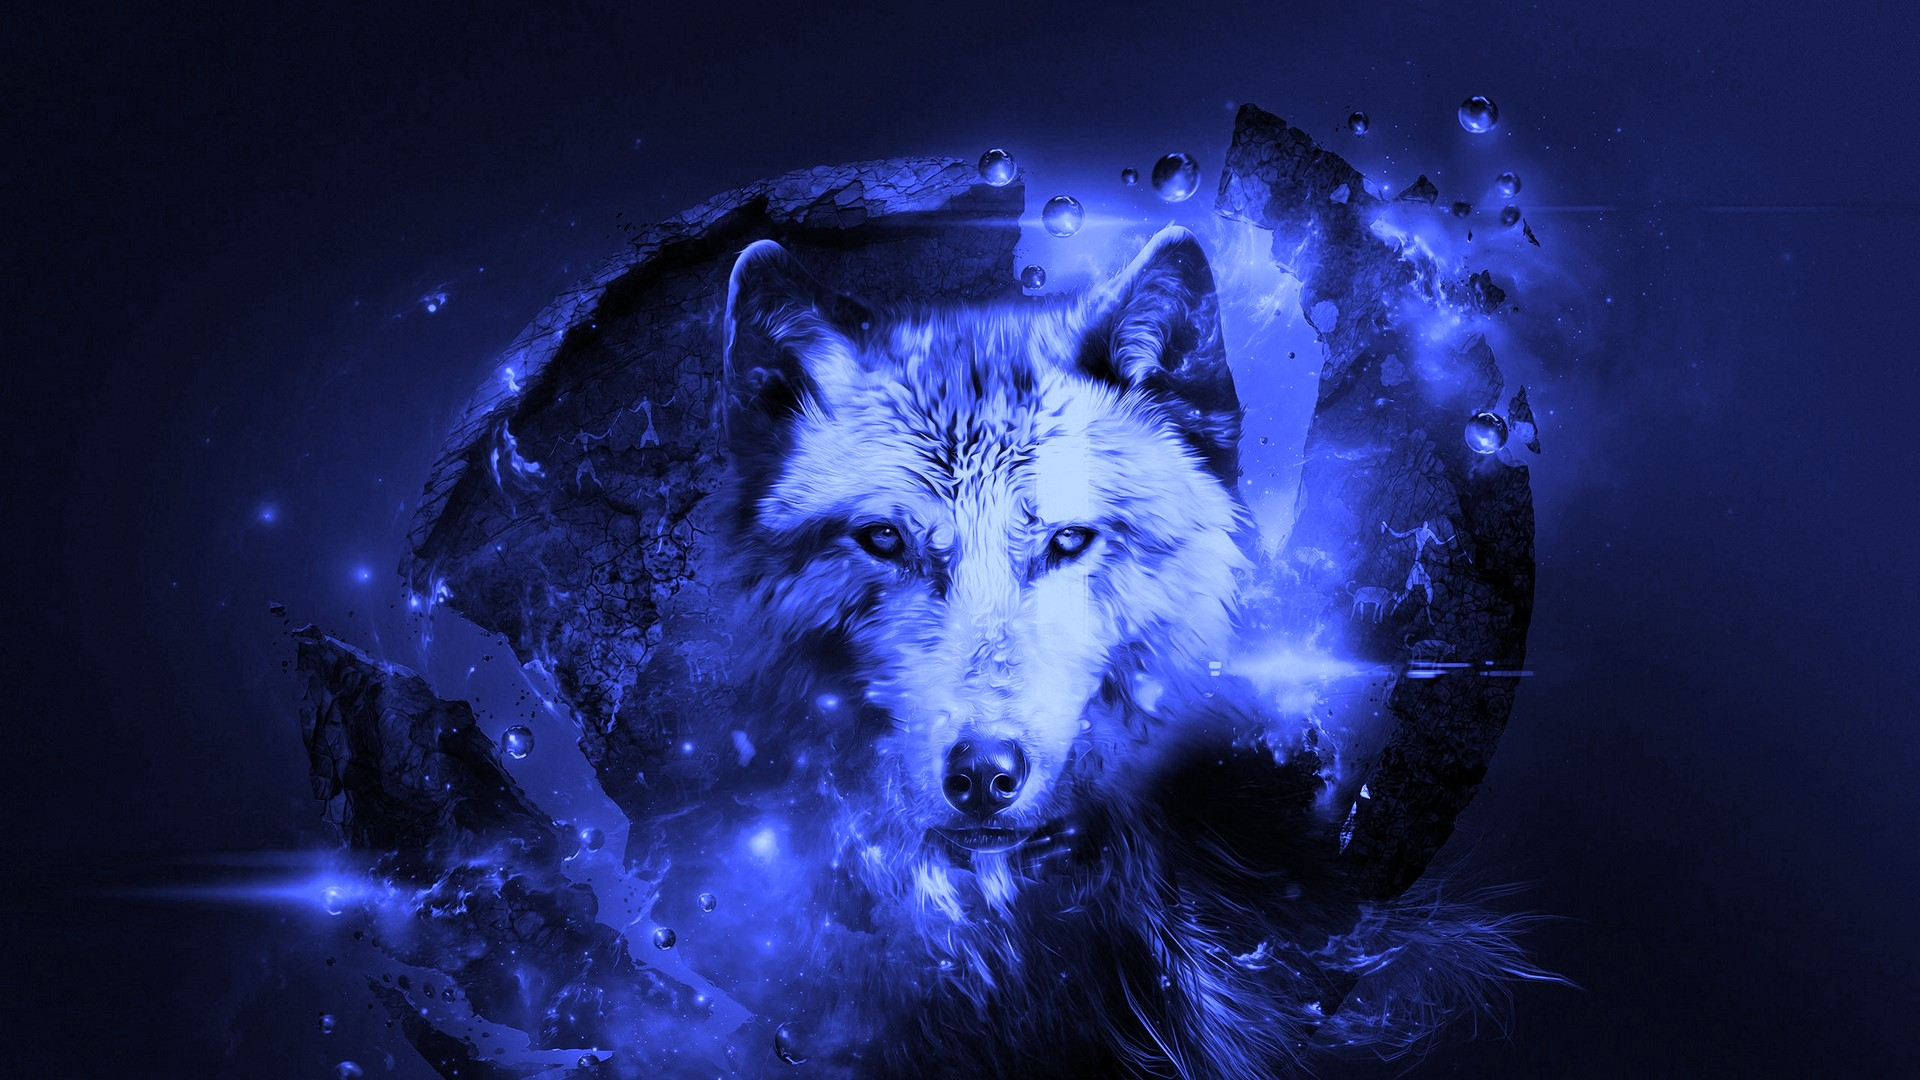 Best Cool Wolf Wallpaper Hd With High Resolution Pixel Cool Wolf 1920x1080 Download Hd Wallpaper Wallpapertip